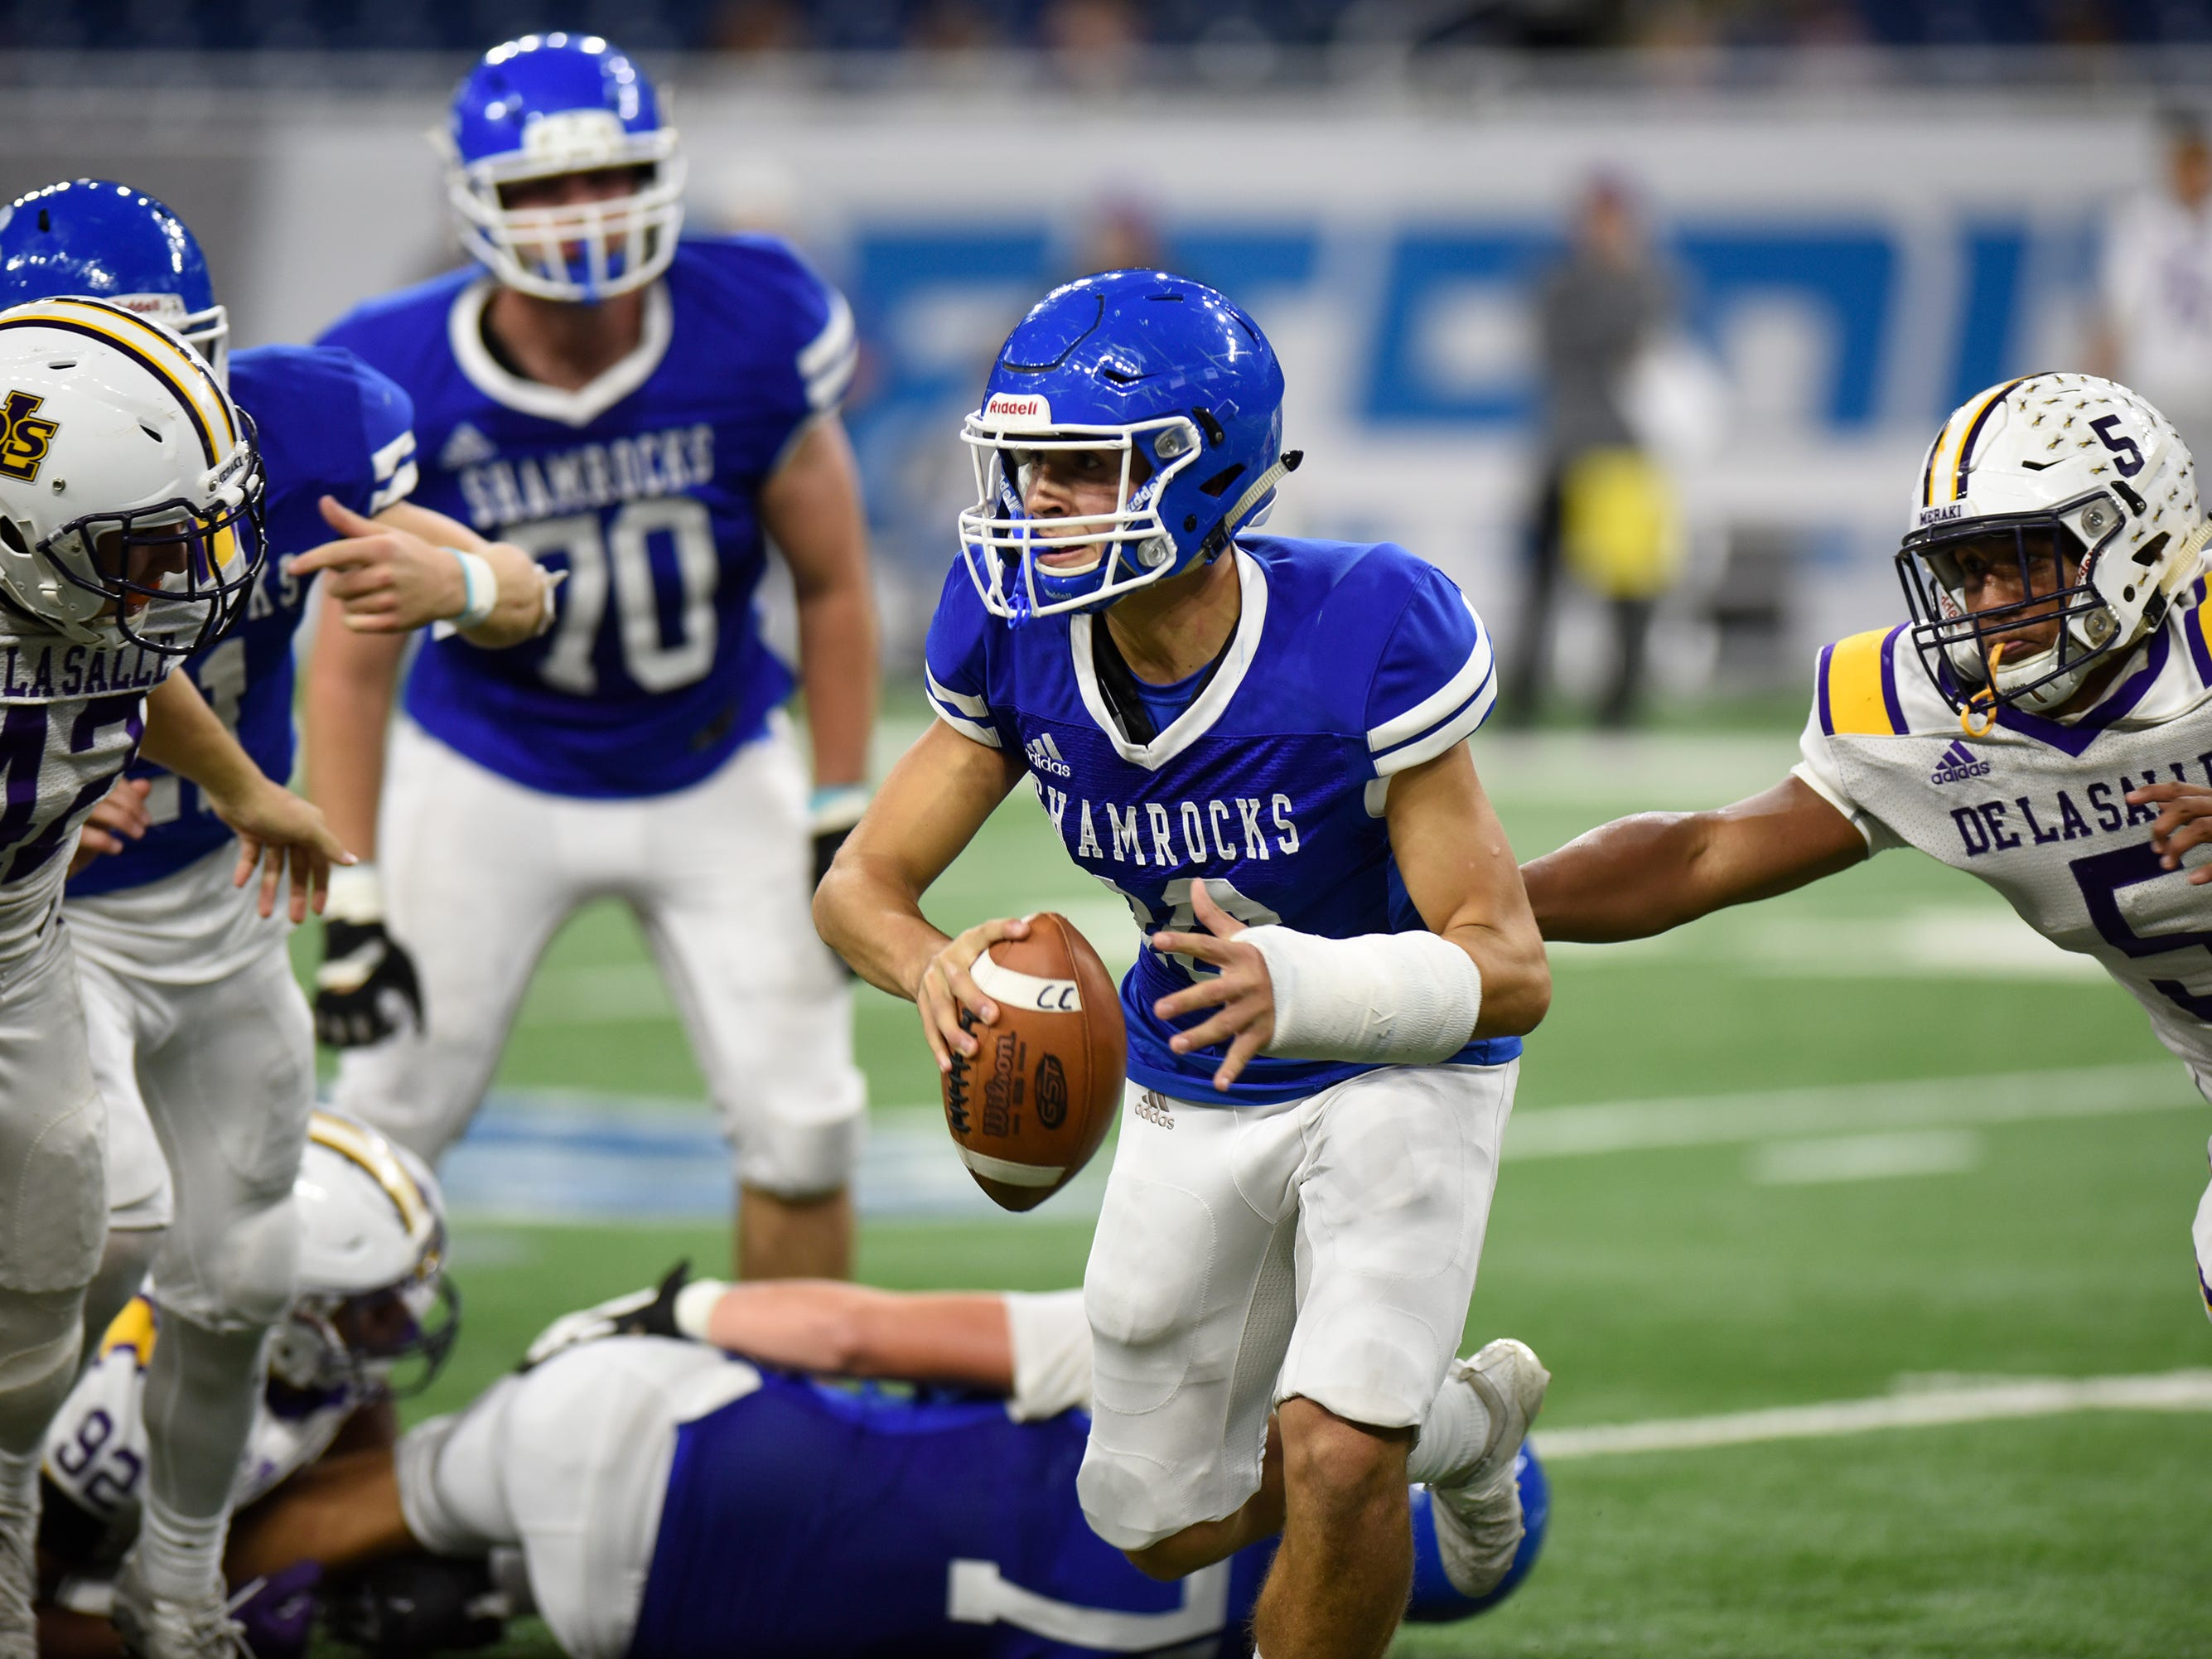 Detroit Catholic Central QB Marco Genrich (10) is chased by Warren De La Salle defenders David Stegner (42) and Devin Campbell (5) during the Catholic League Prep Bowl AB Division championship game at Ford Field Oct. 20, 2018.